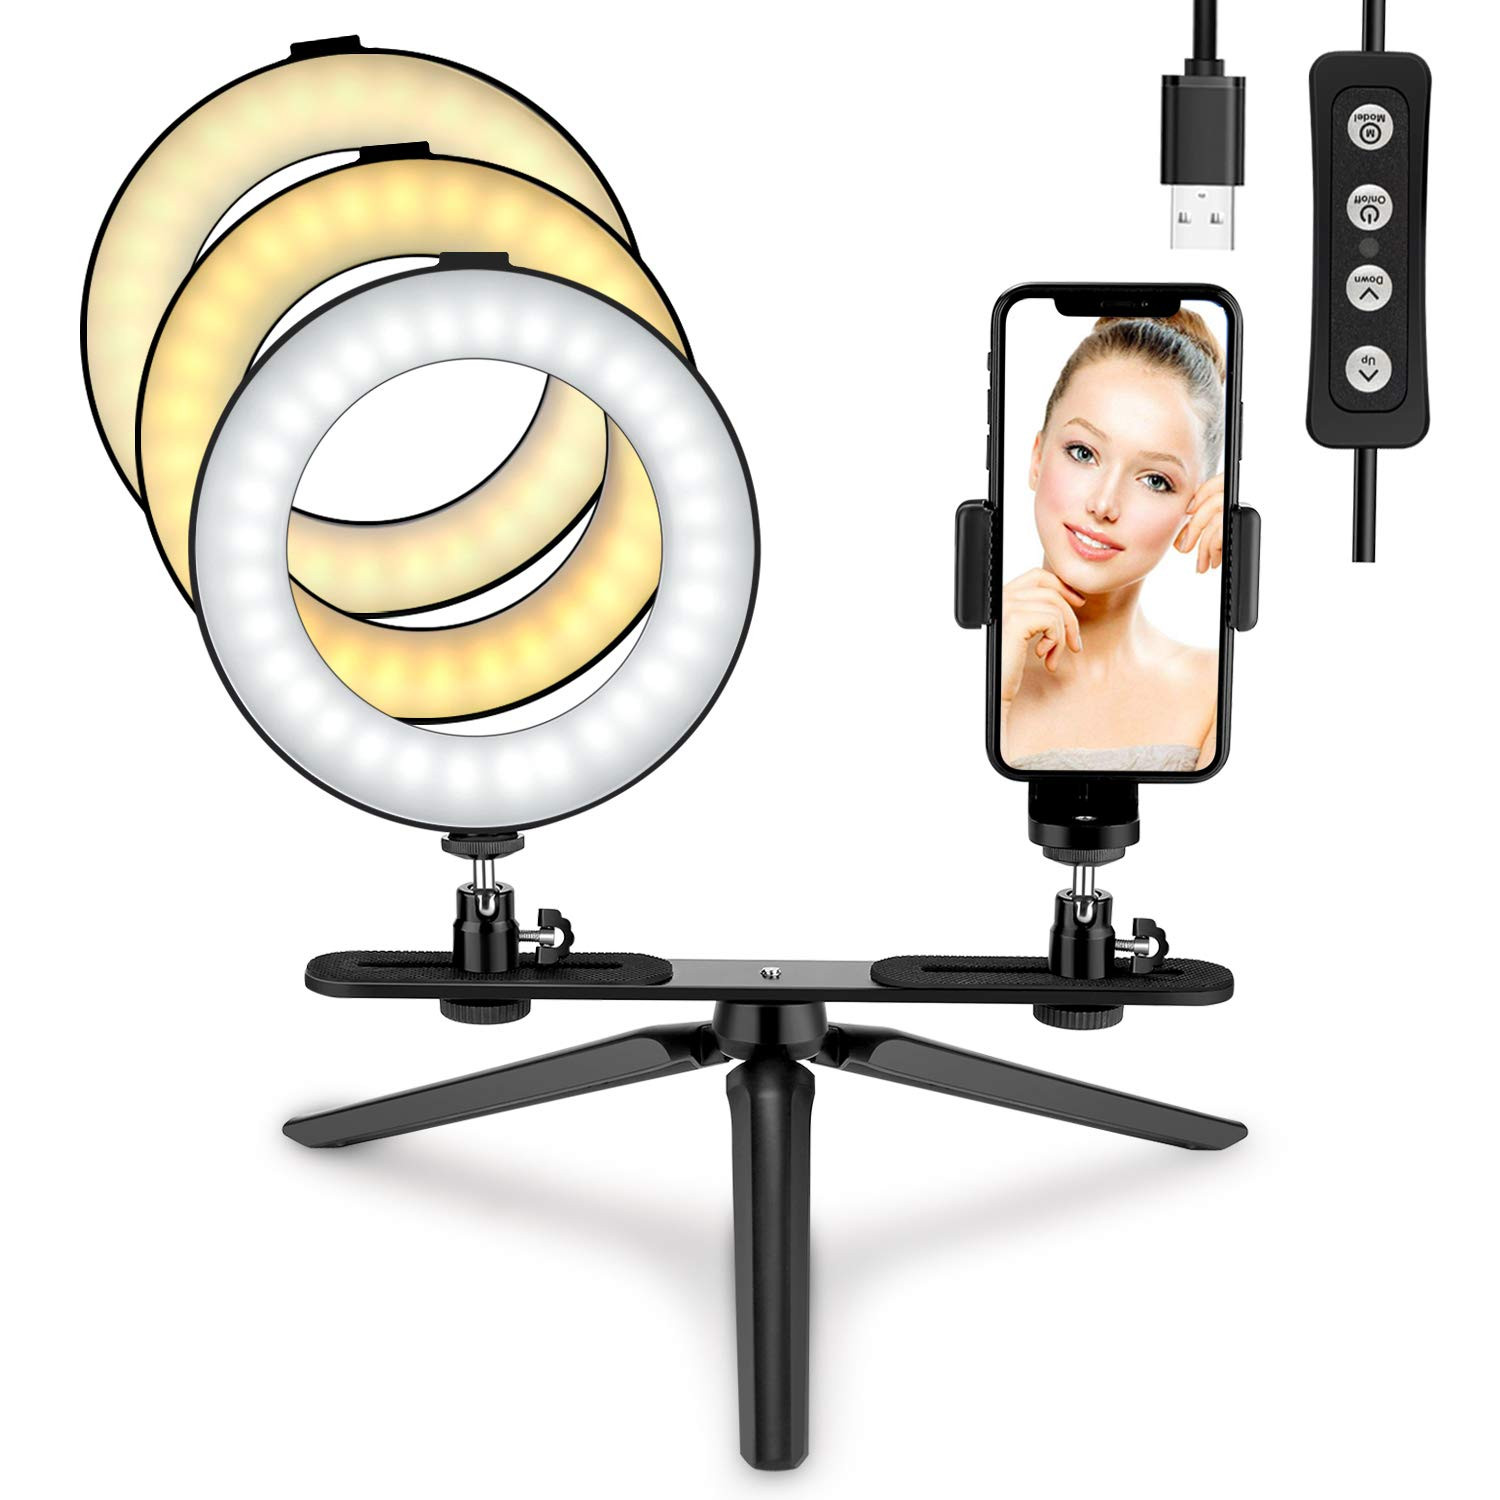 LED Ring Light 6'' with Tripod Stand & Phone Holder, Tenswall Mini LED Camera Ring Light, Desktop LED Lamp for Makeup/Live Stream/YouTube Video/Photography with 3 Light Modes & 11 Brightness Levels